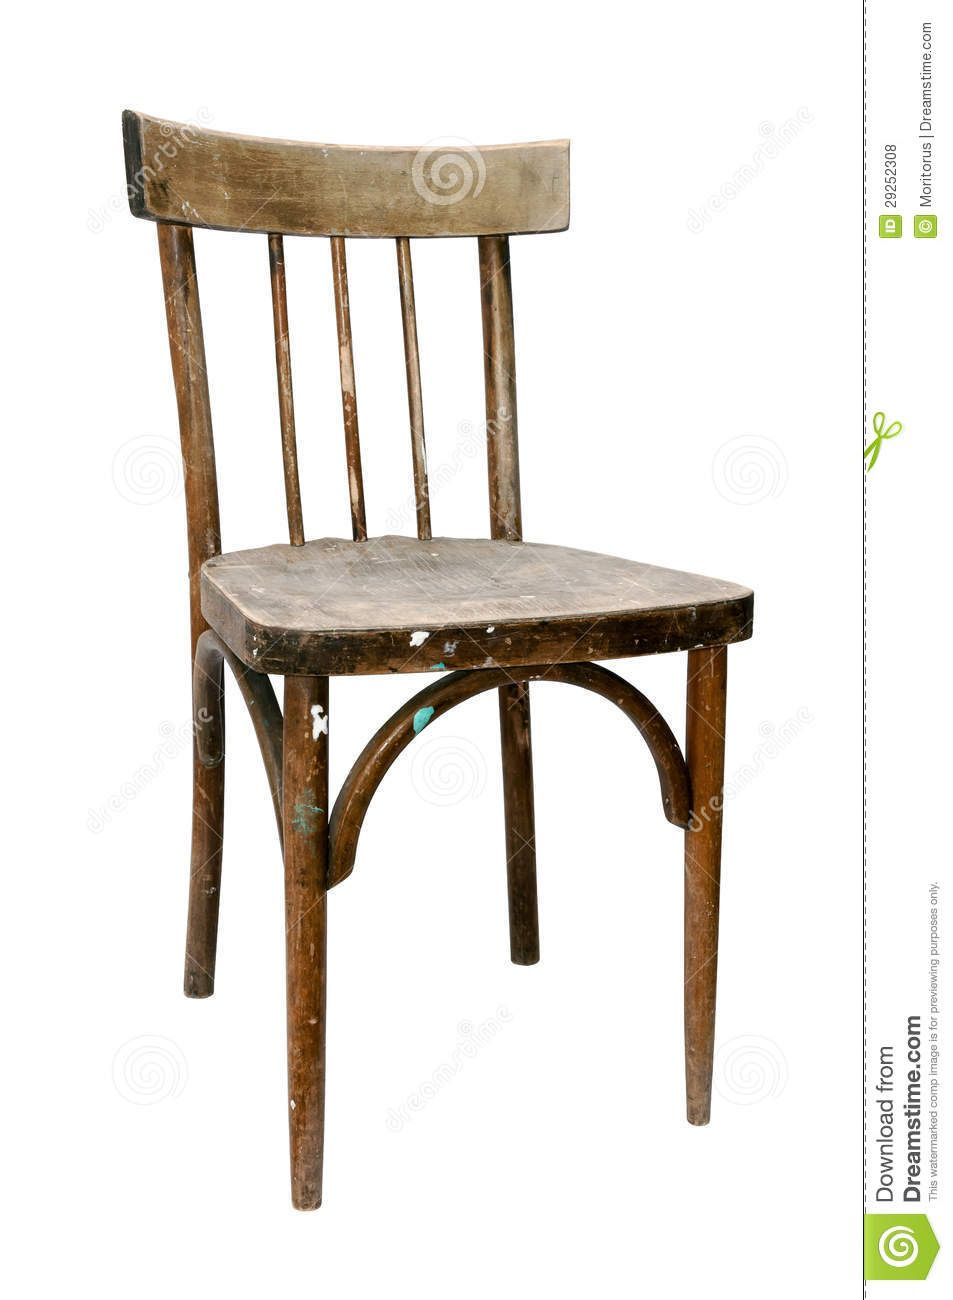 Old Wooden Chair, Old Wooden Chair Old Wood Chair 48 Explore Old Wooden  Chairs Wood Chairs And